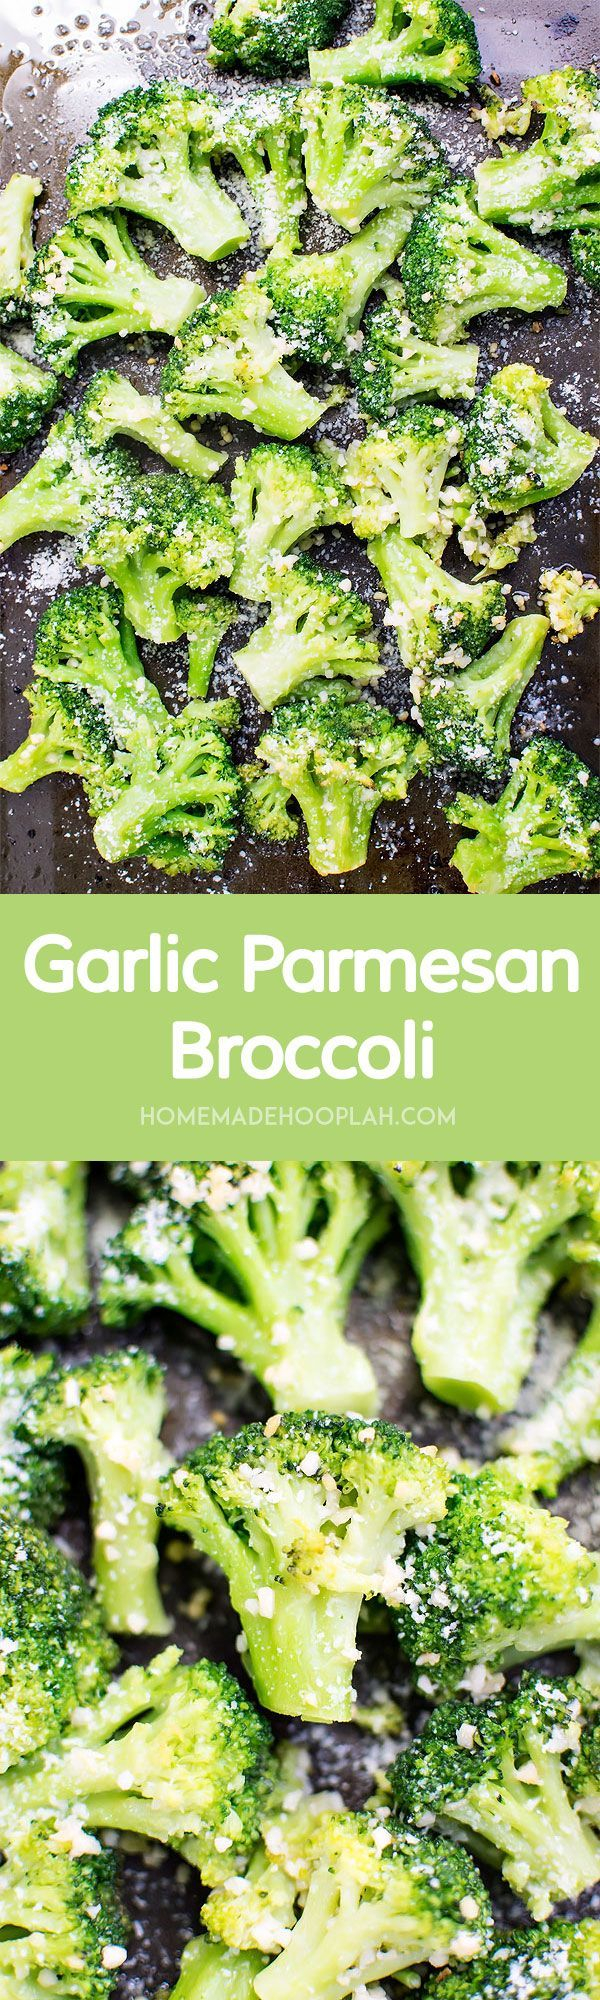 Garlic Parmesan Broccoli! The perfect side dish to any meal! Broccoli baked with olive oil and garlic then sprinkled with parmesan cheese. | http://HomemadeHooplah.com